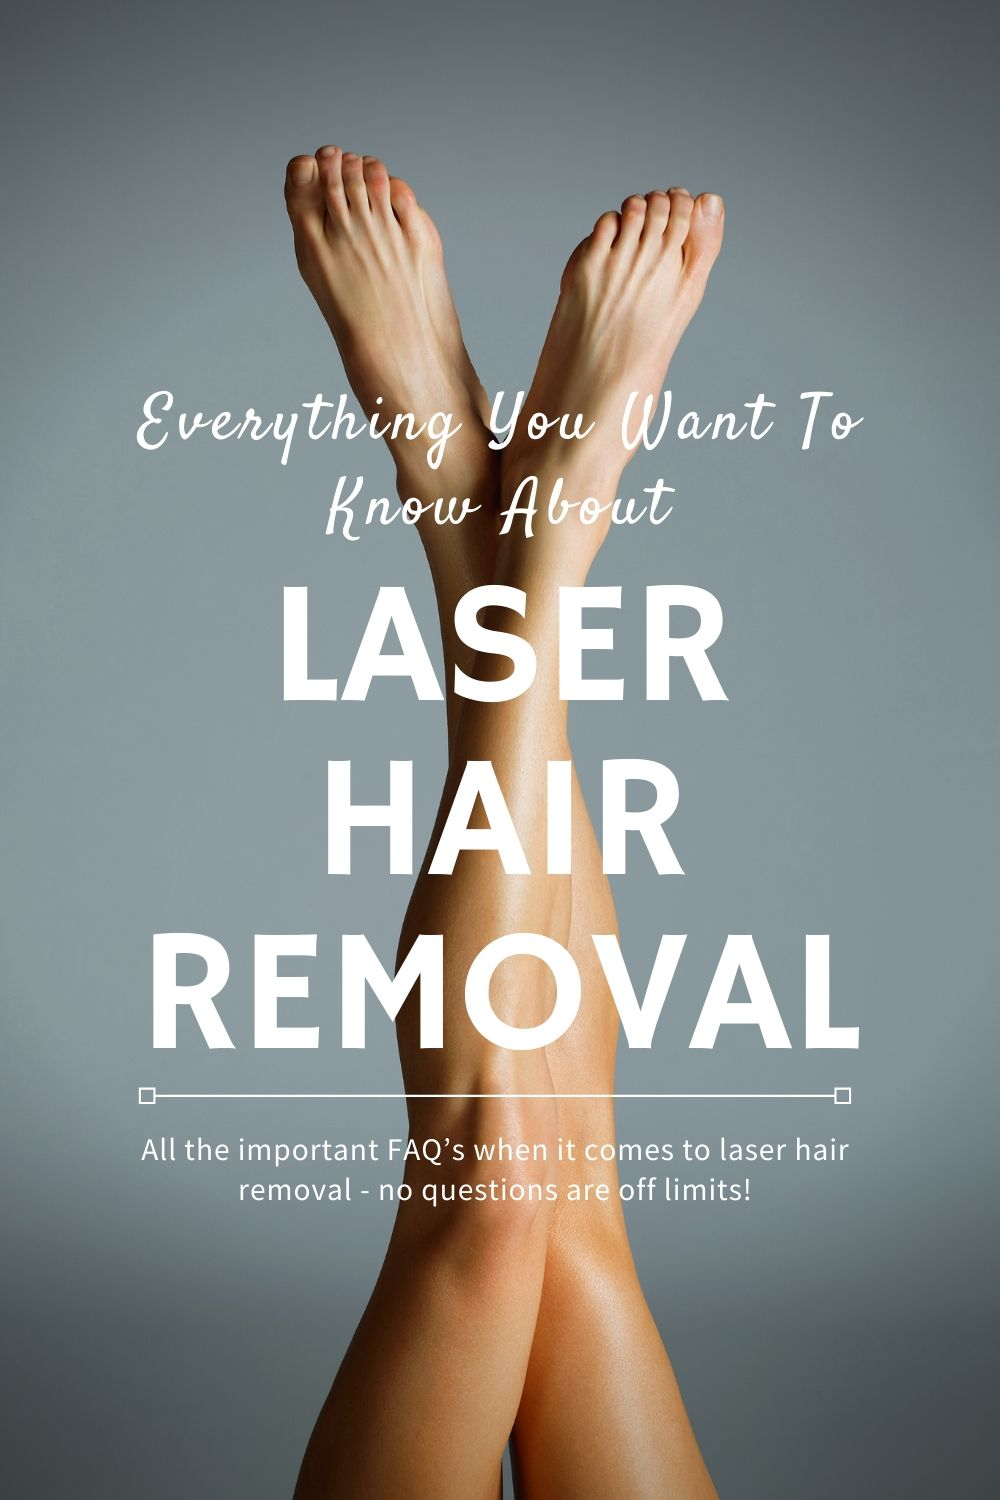 Everything you want to know about laser hair removal